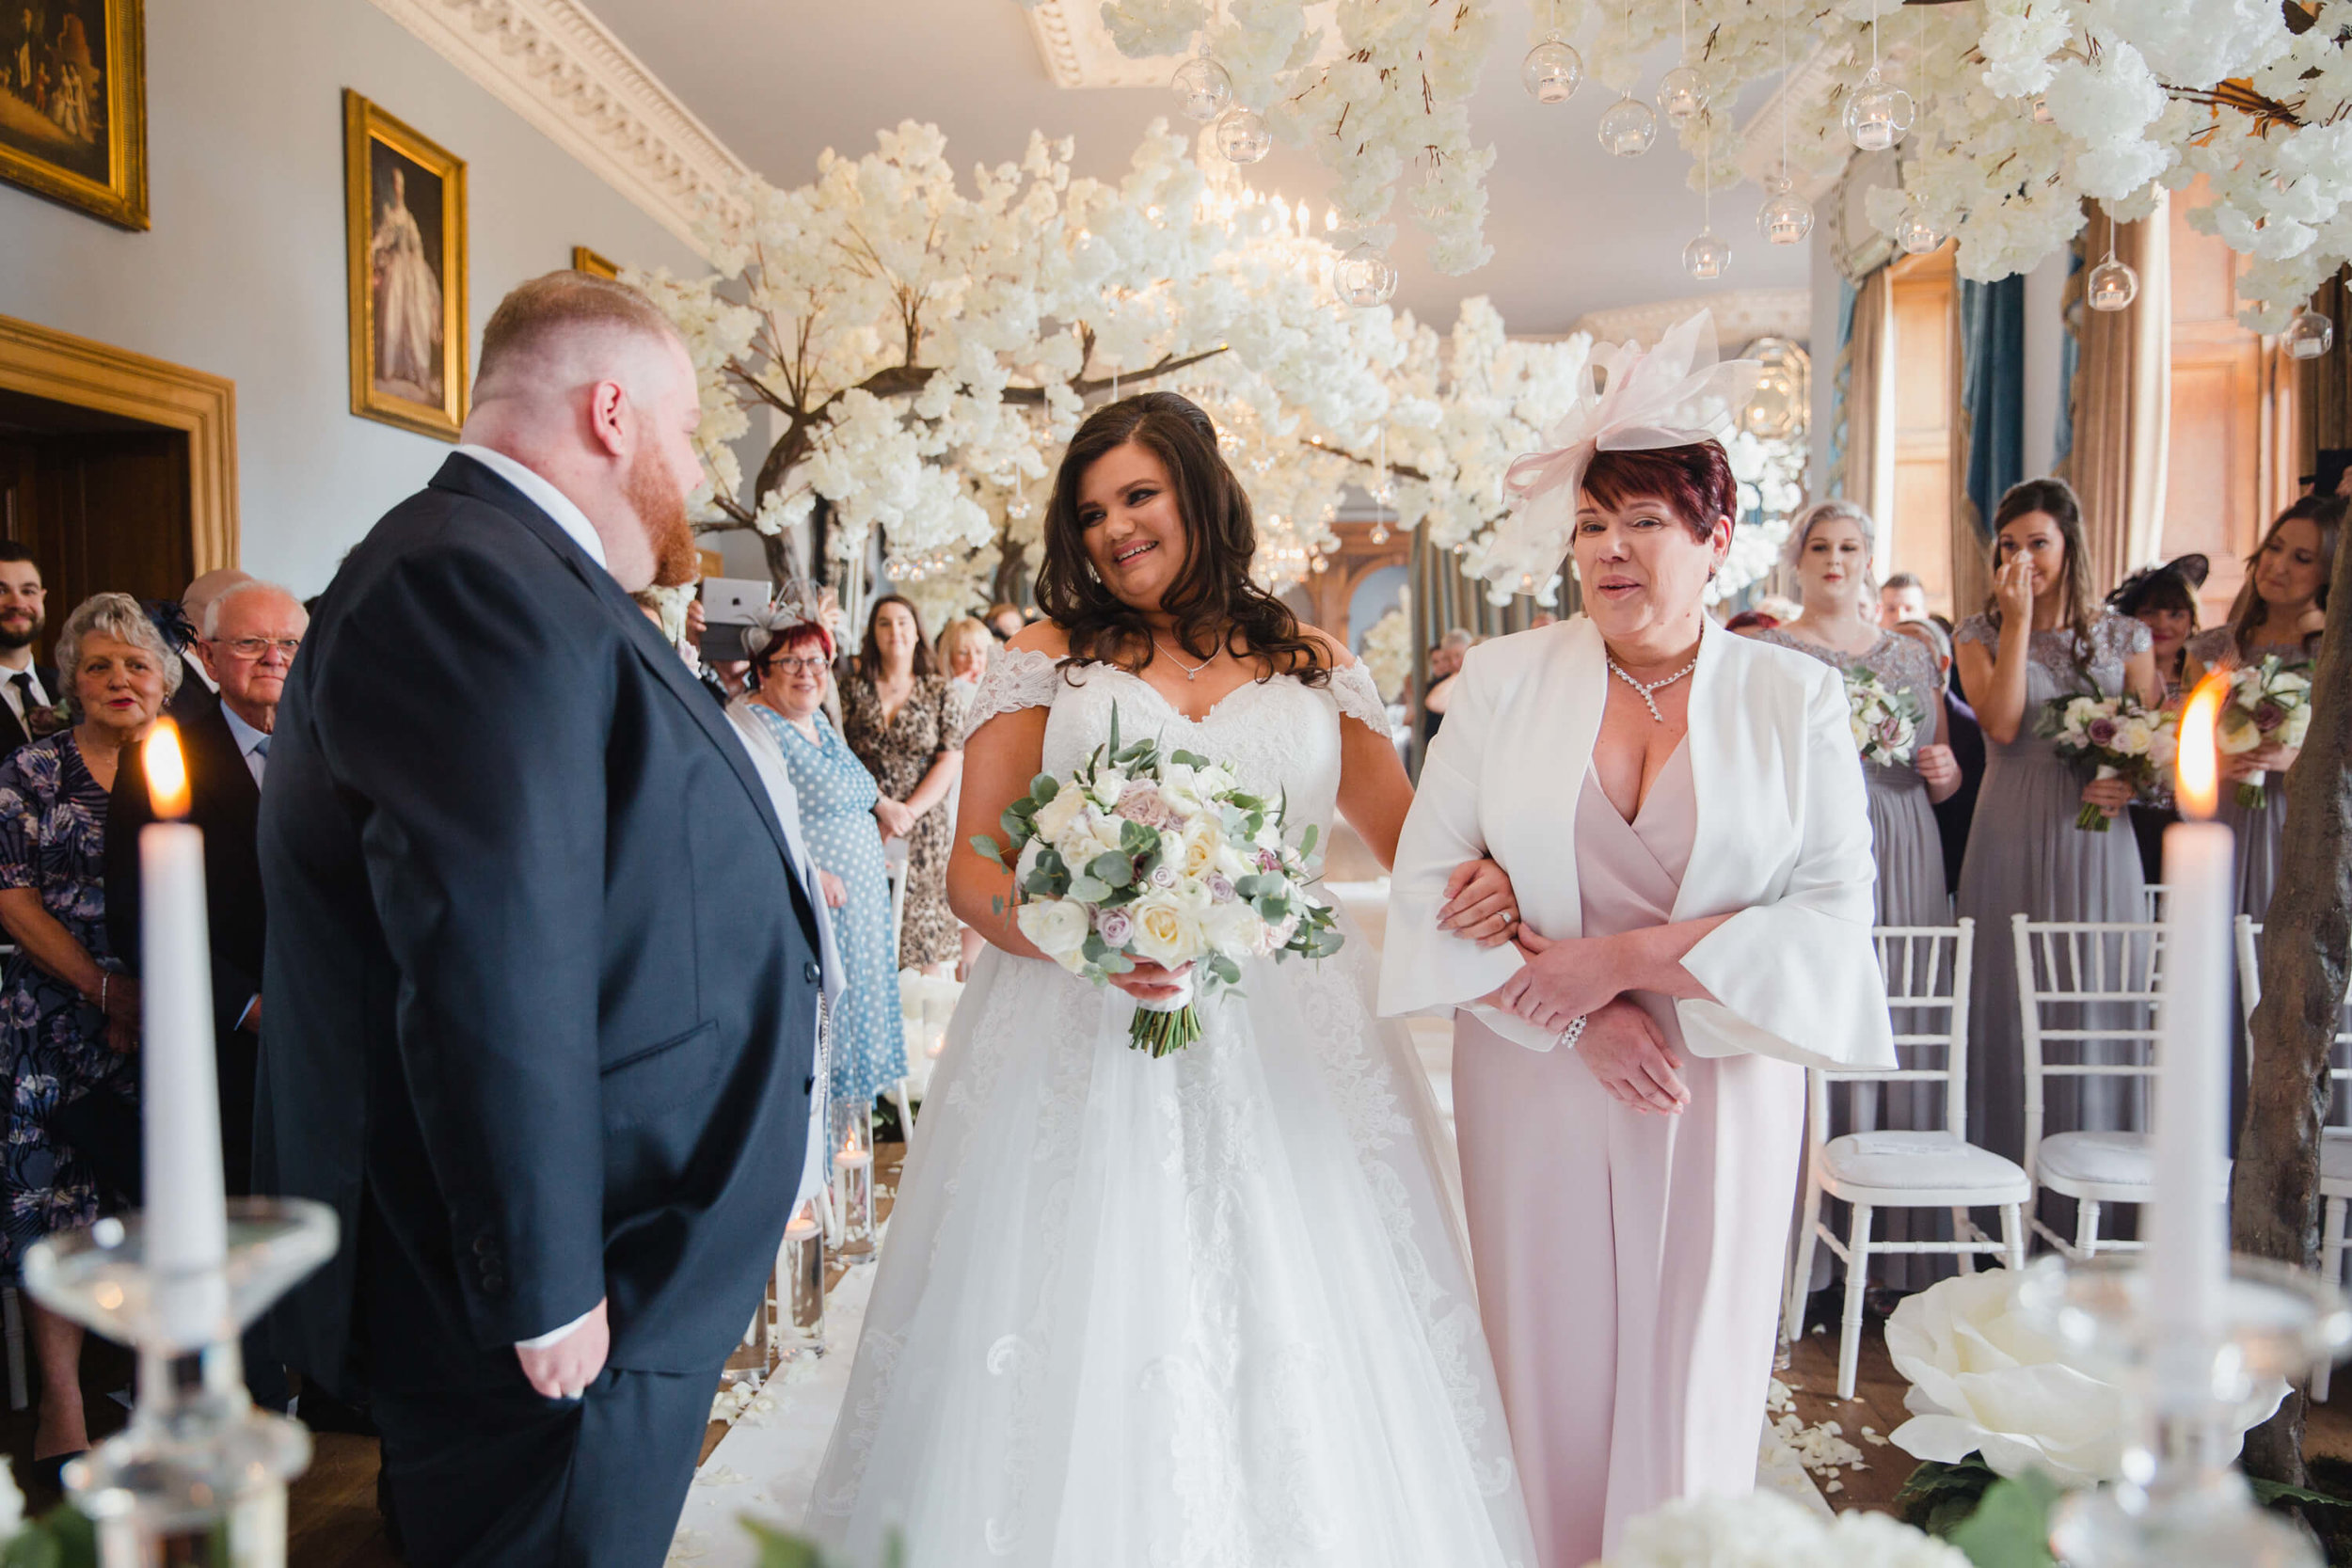 groom greeting bride at top of aisle for wedding ceremony at haigh hall